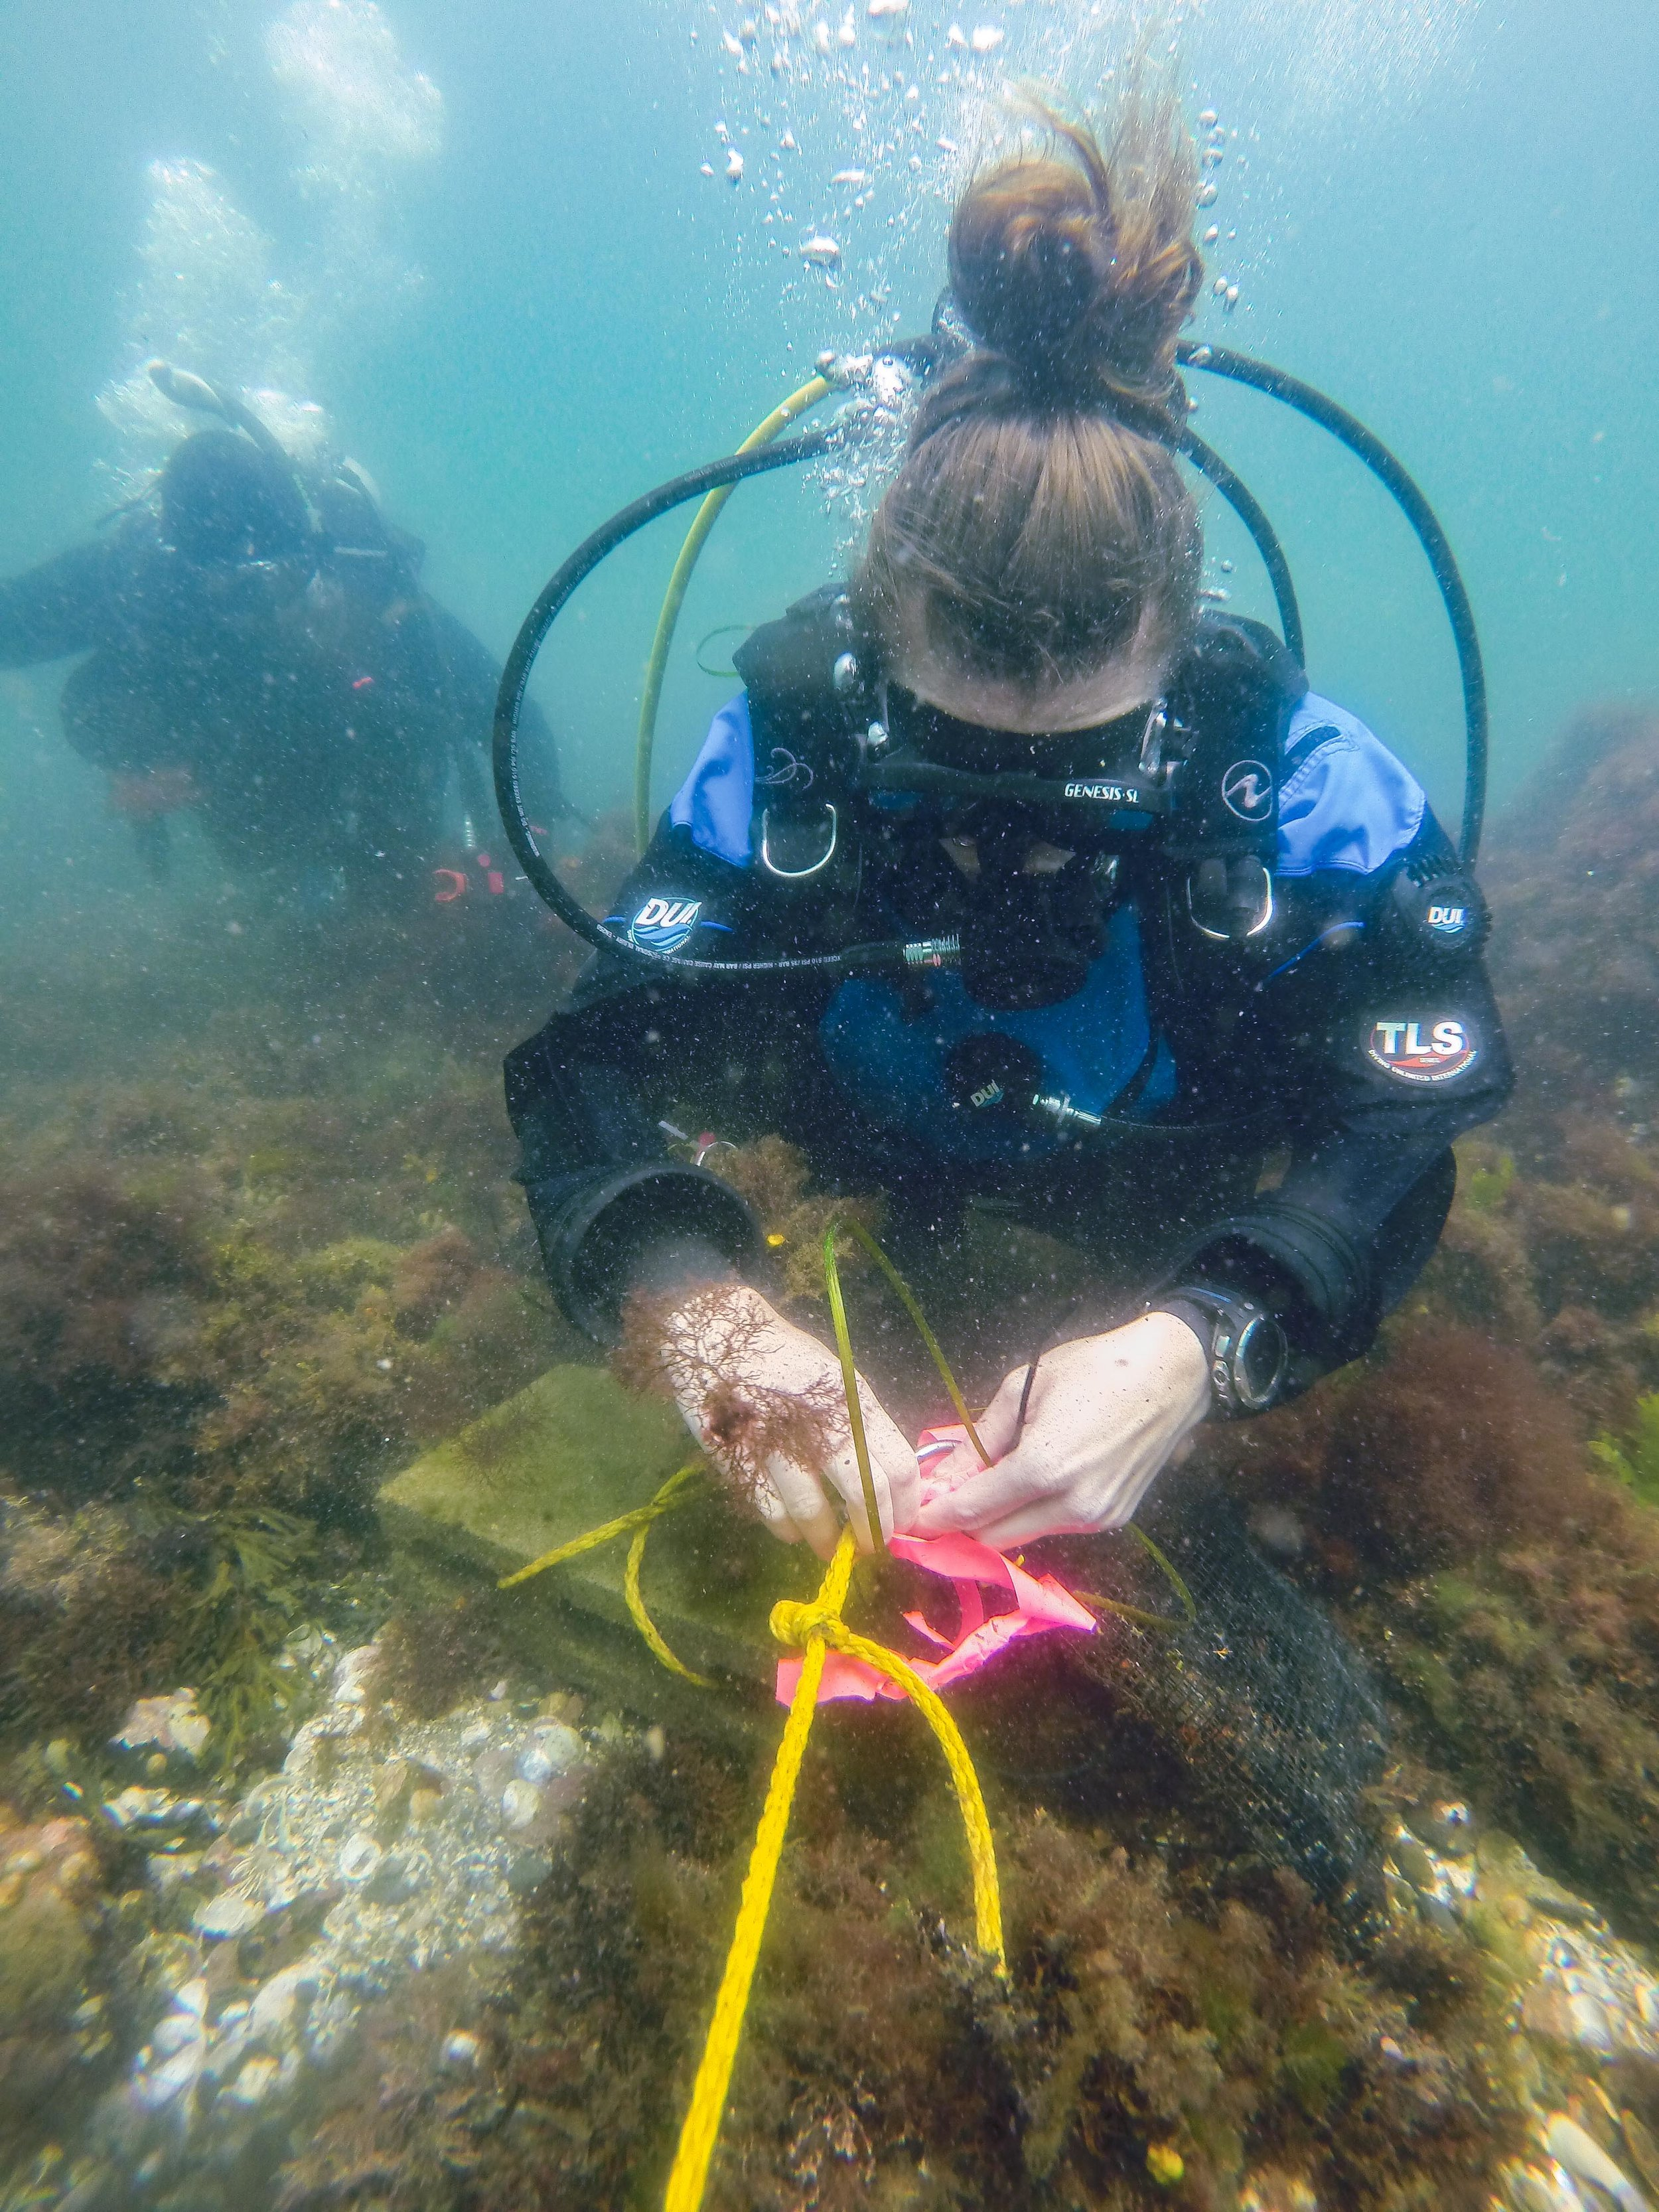 Contribute Data - Do you have data from dives around Cape Ann? Add your measurements and photos to the collection.